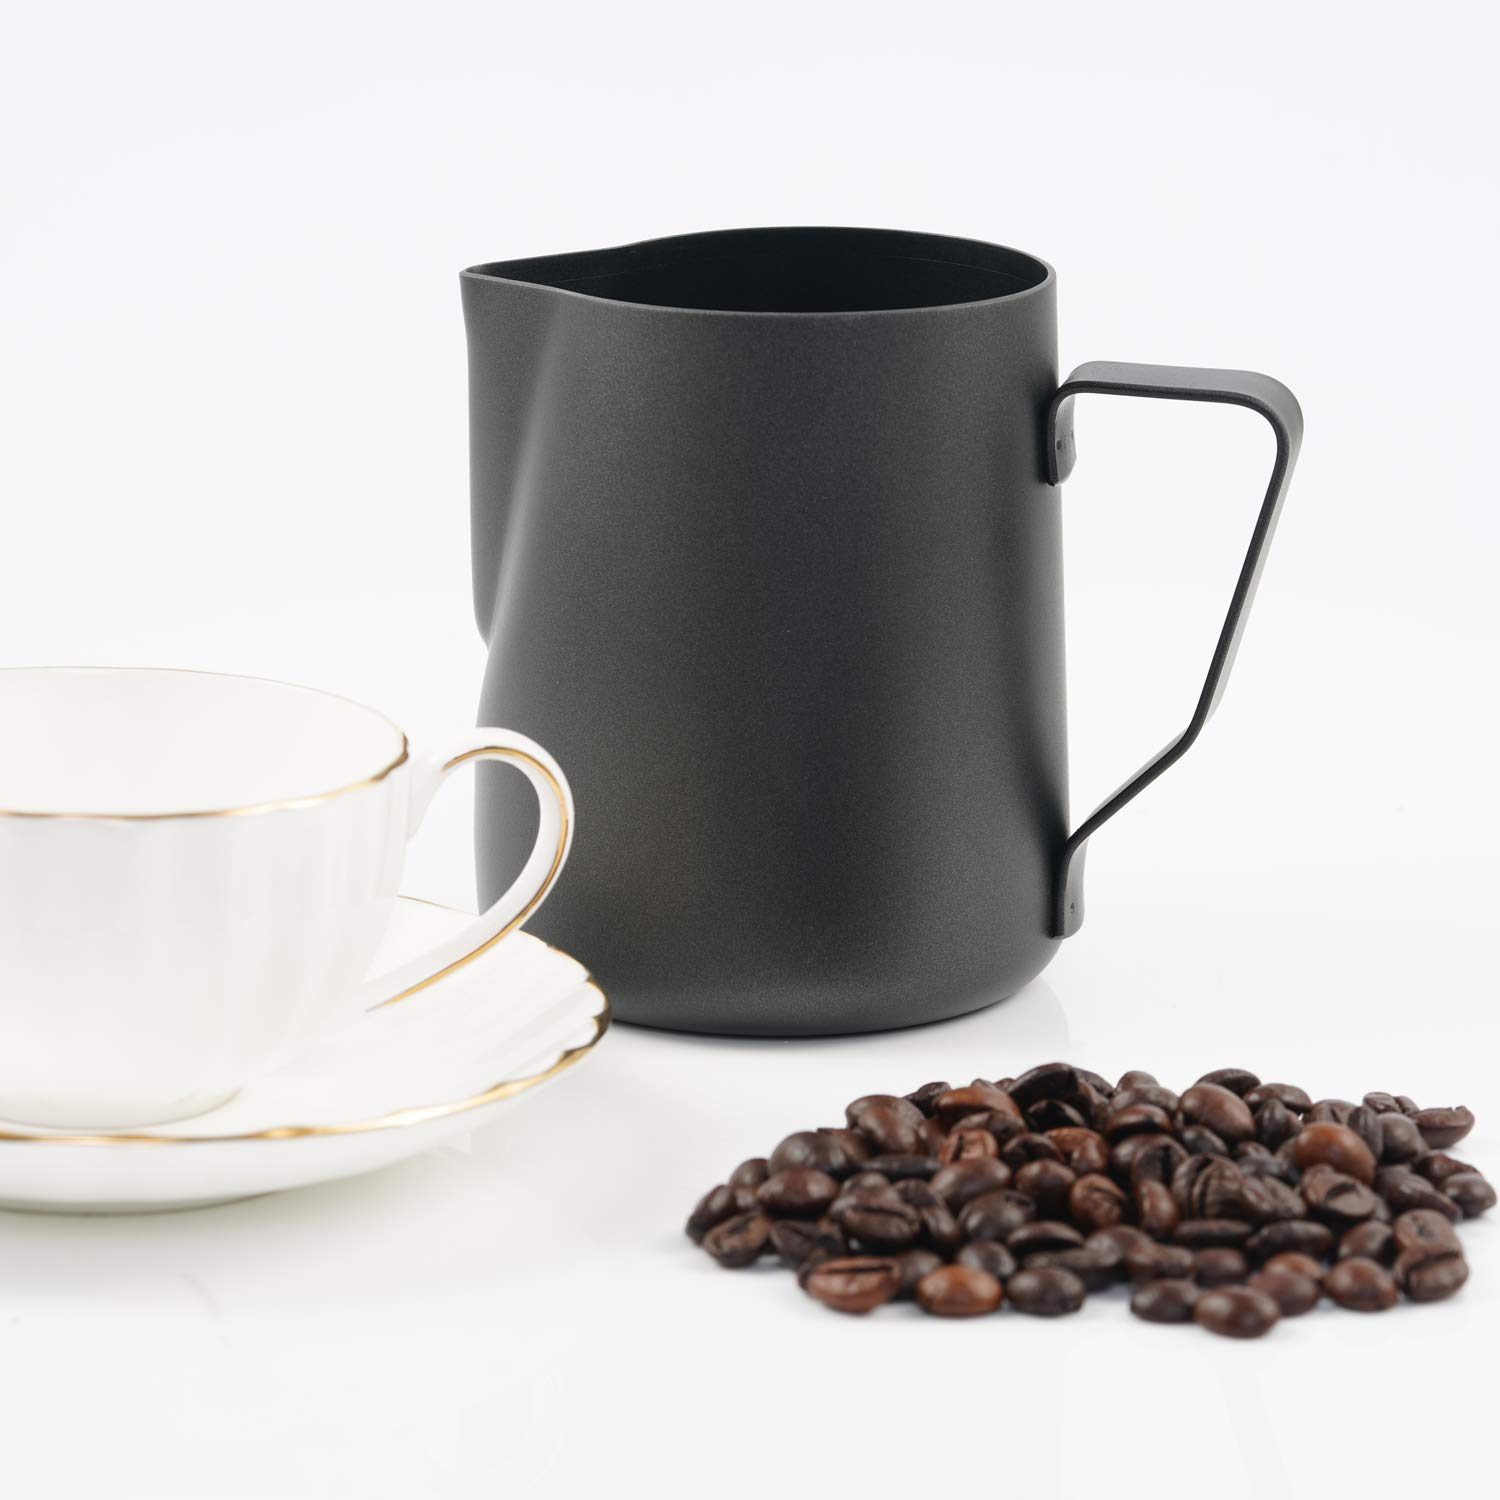 Milk Frothers 600 ml Latte Art 20oz Milk Frothing Pitcher Stainless Steel Creamer Frothing Pitcher Espresso Milk Frothing Cup Jug with Non-Stick Teflon Coating  Perfect for Espresso Machines